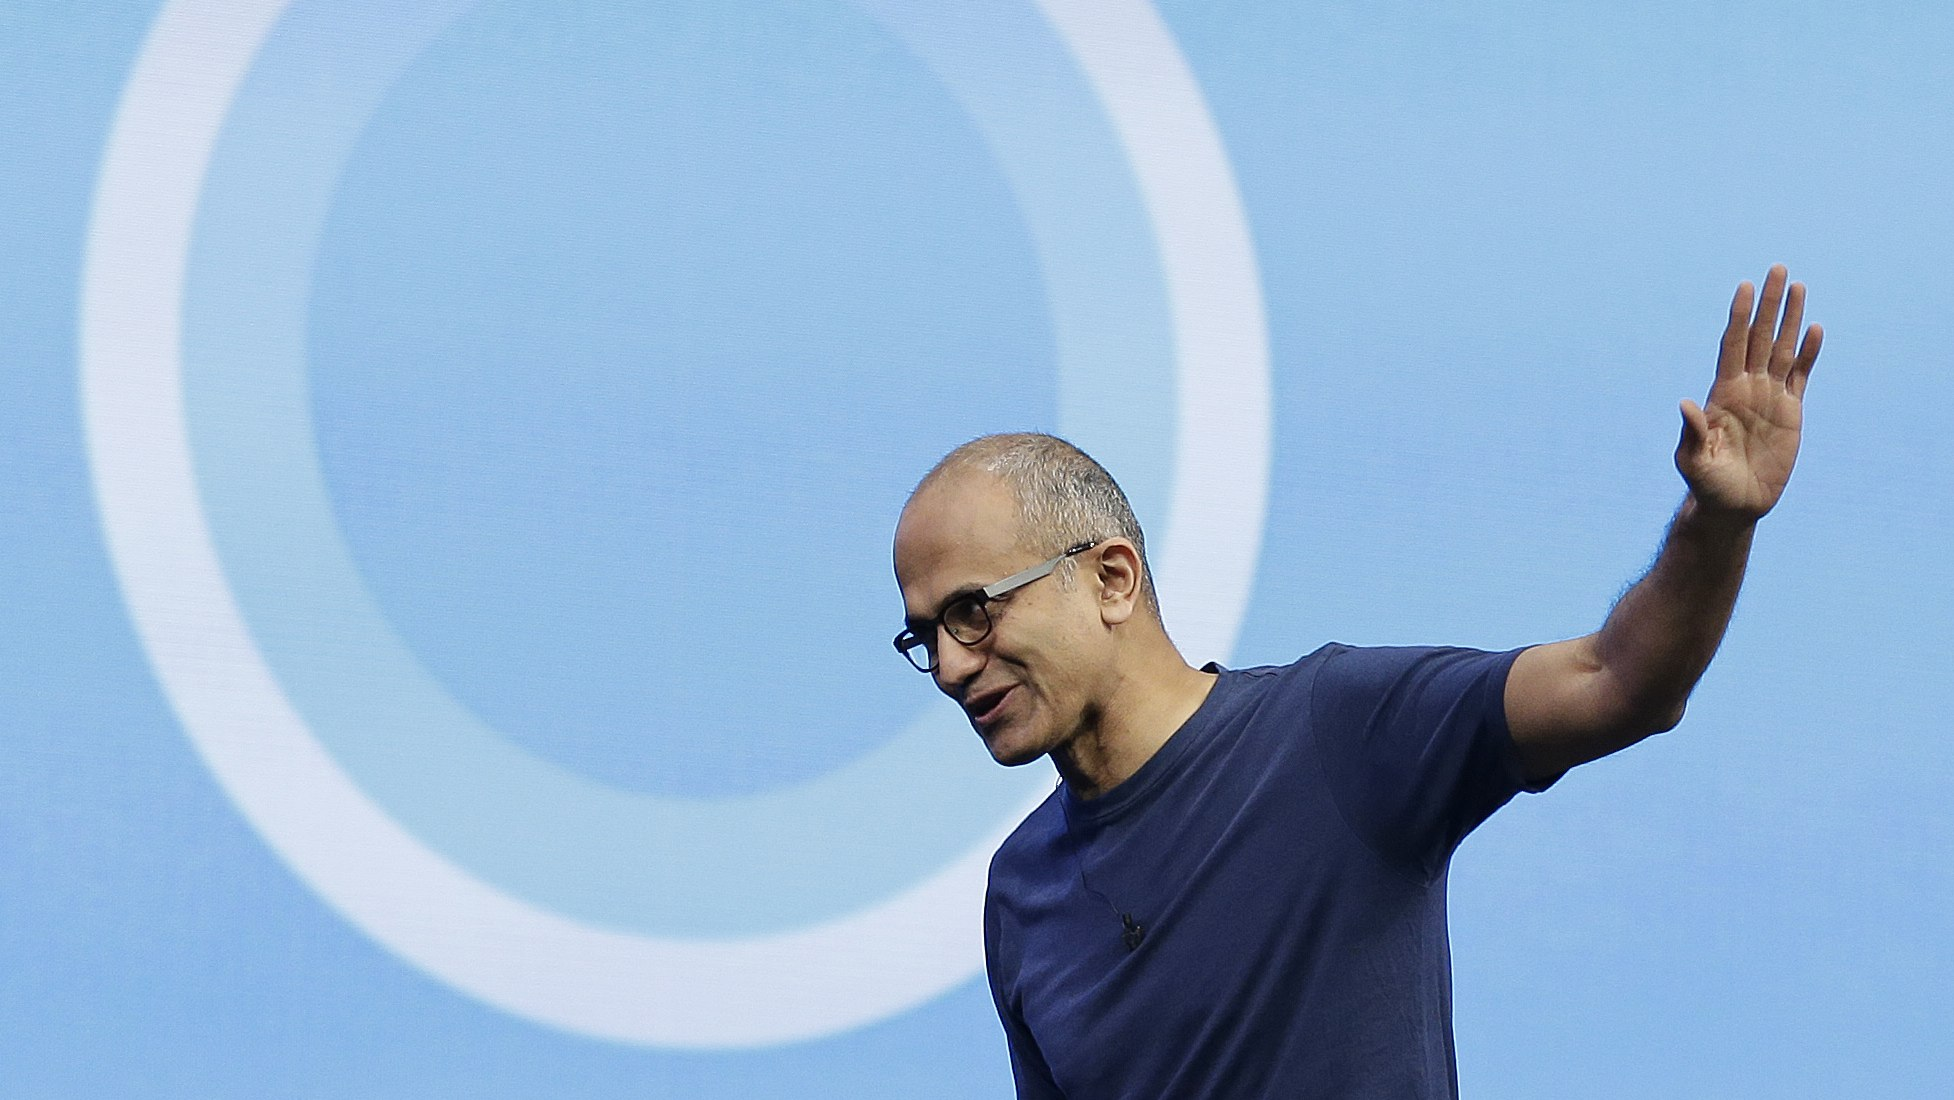 Microsoft CEO Satya Nadella waves after delivering the keynote address to the Build Conference Wednesday, April 2, 2014, in San Francisco. Microsoft kicked off its annual Build conference for software developers, with new updates to the Windows 8 operating system and upcoming features for Windows Phone and Xbox. (AP Photo/Eric Risberg)